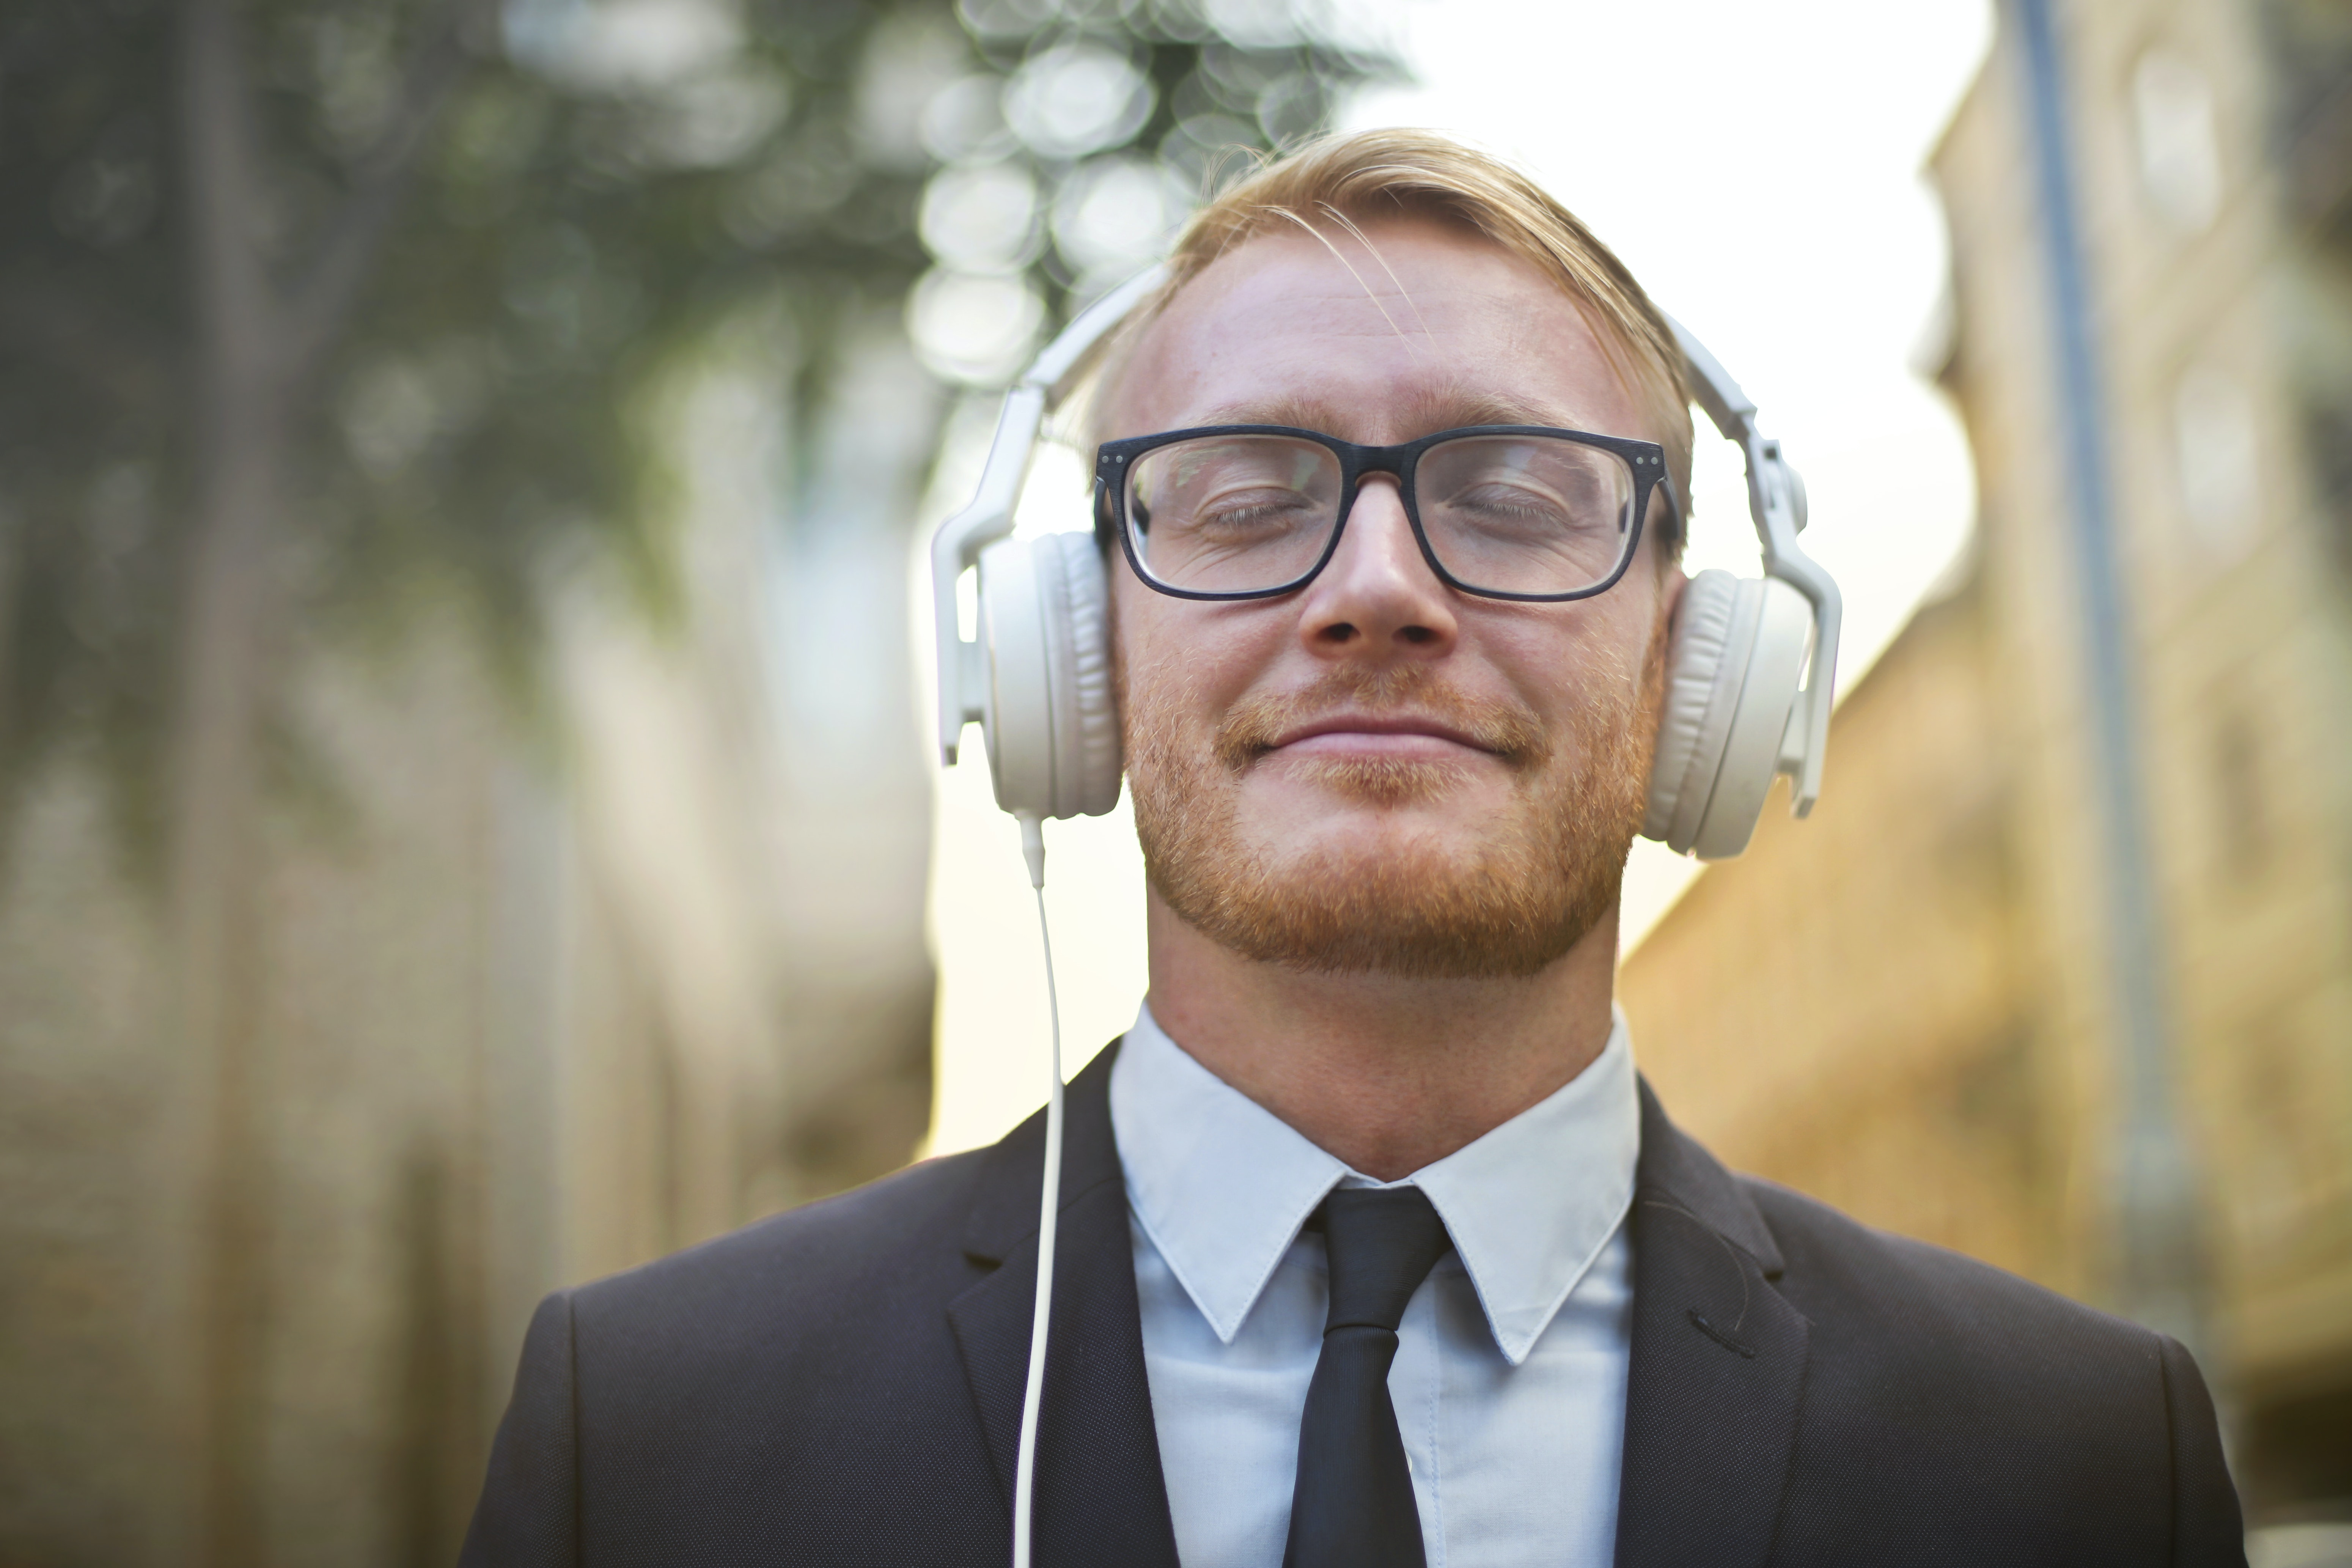 Listening to music can help settle uncomfortable or difficult moods